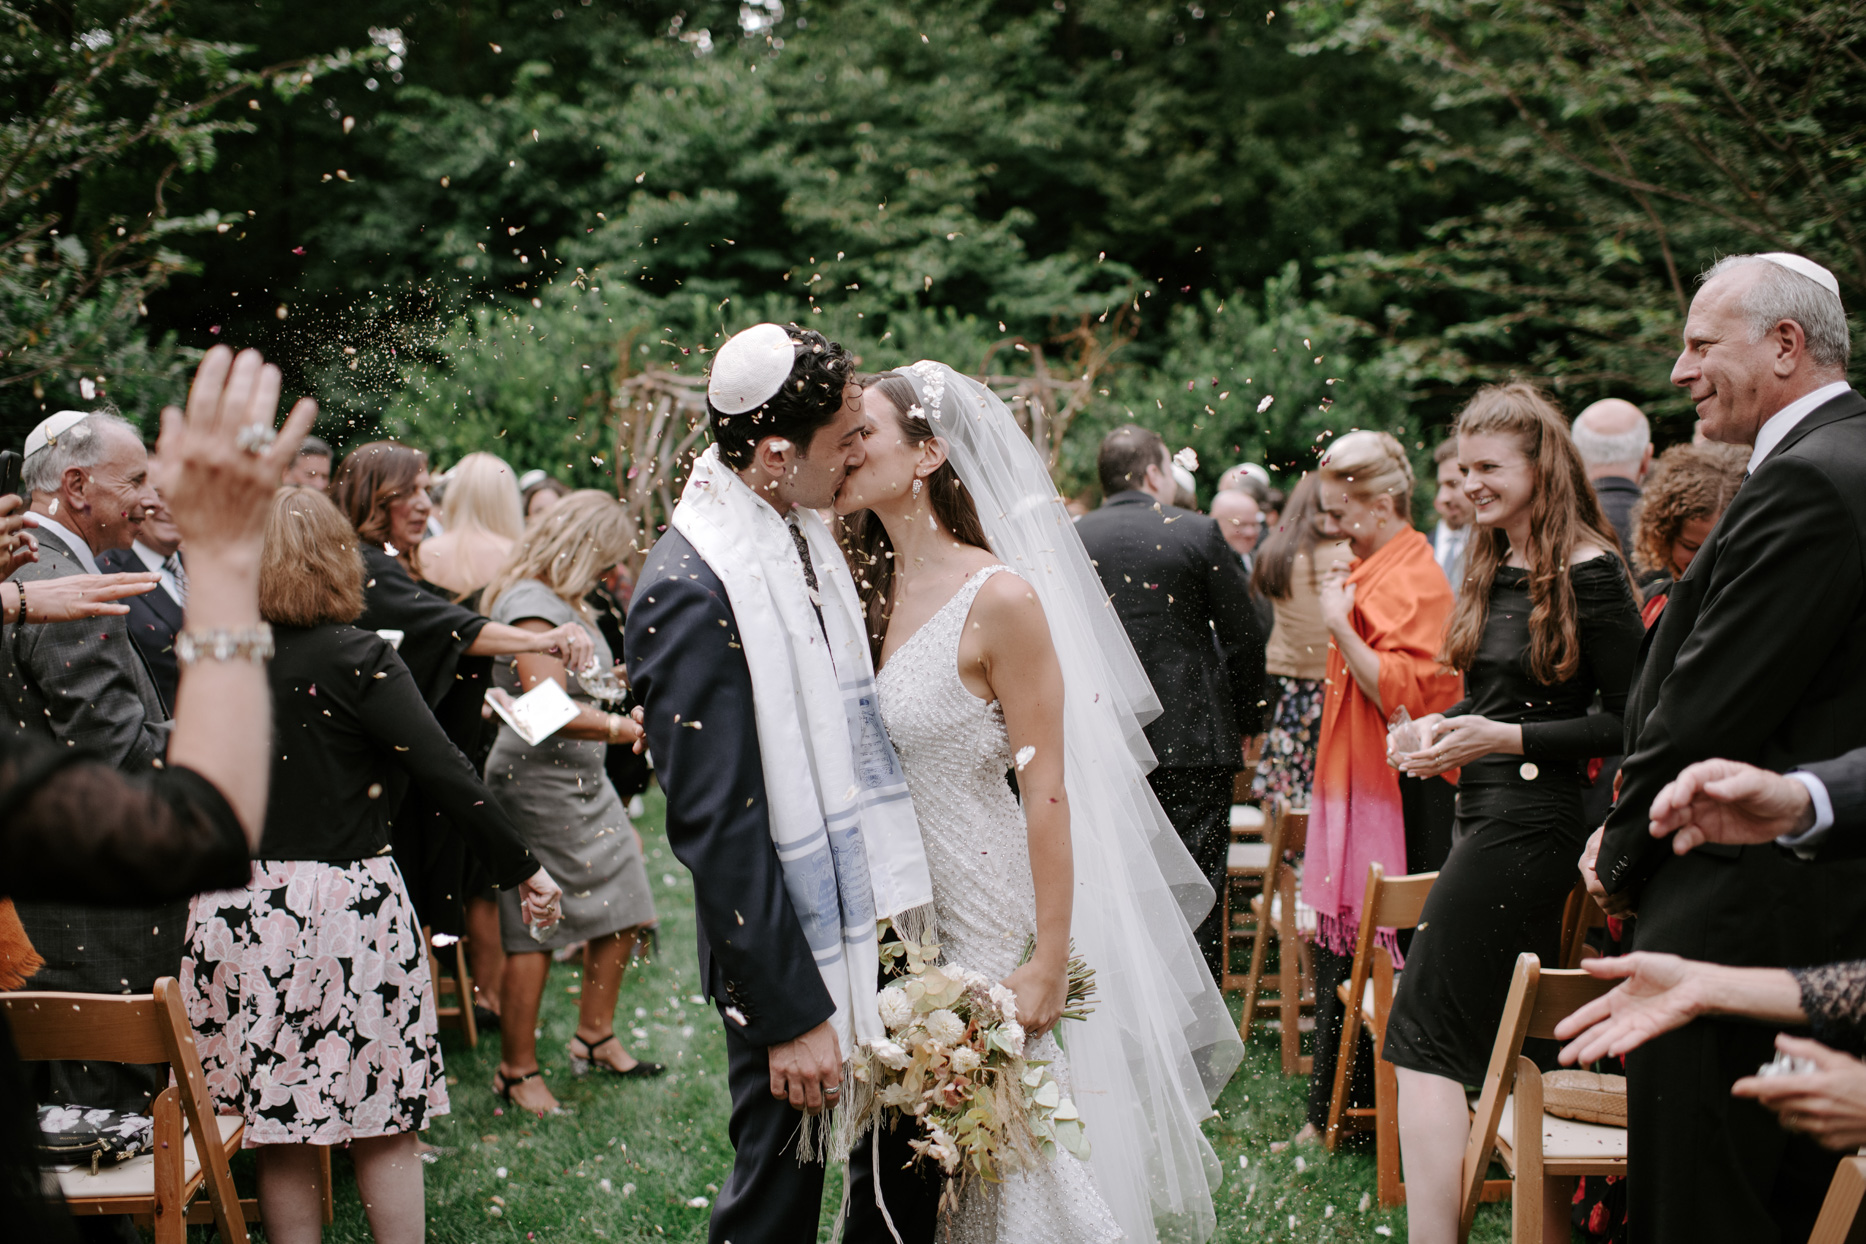 bride and groom kissing during recessional showered in flower petals